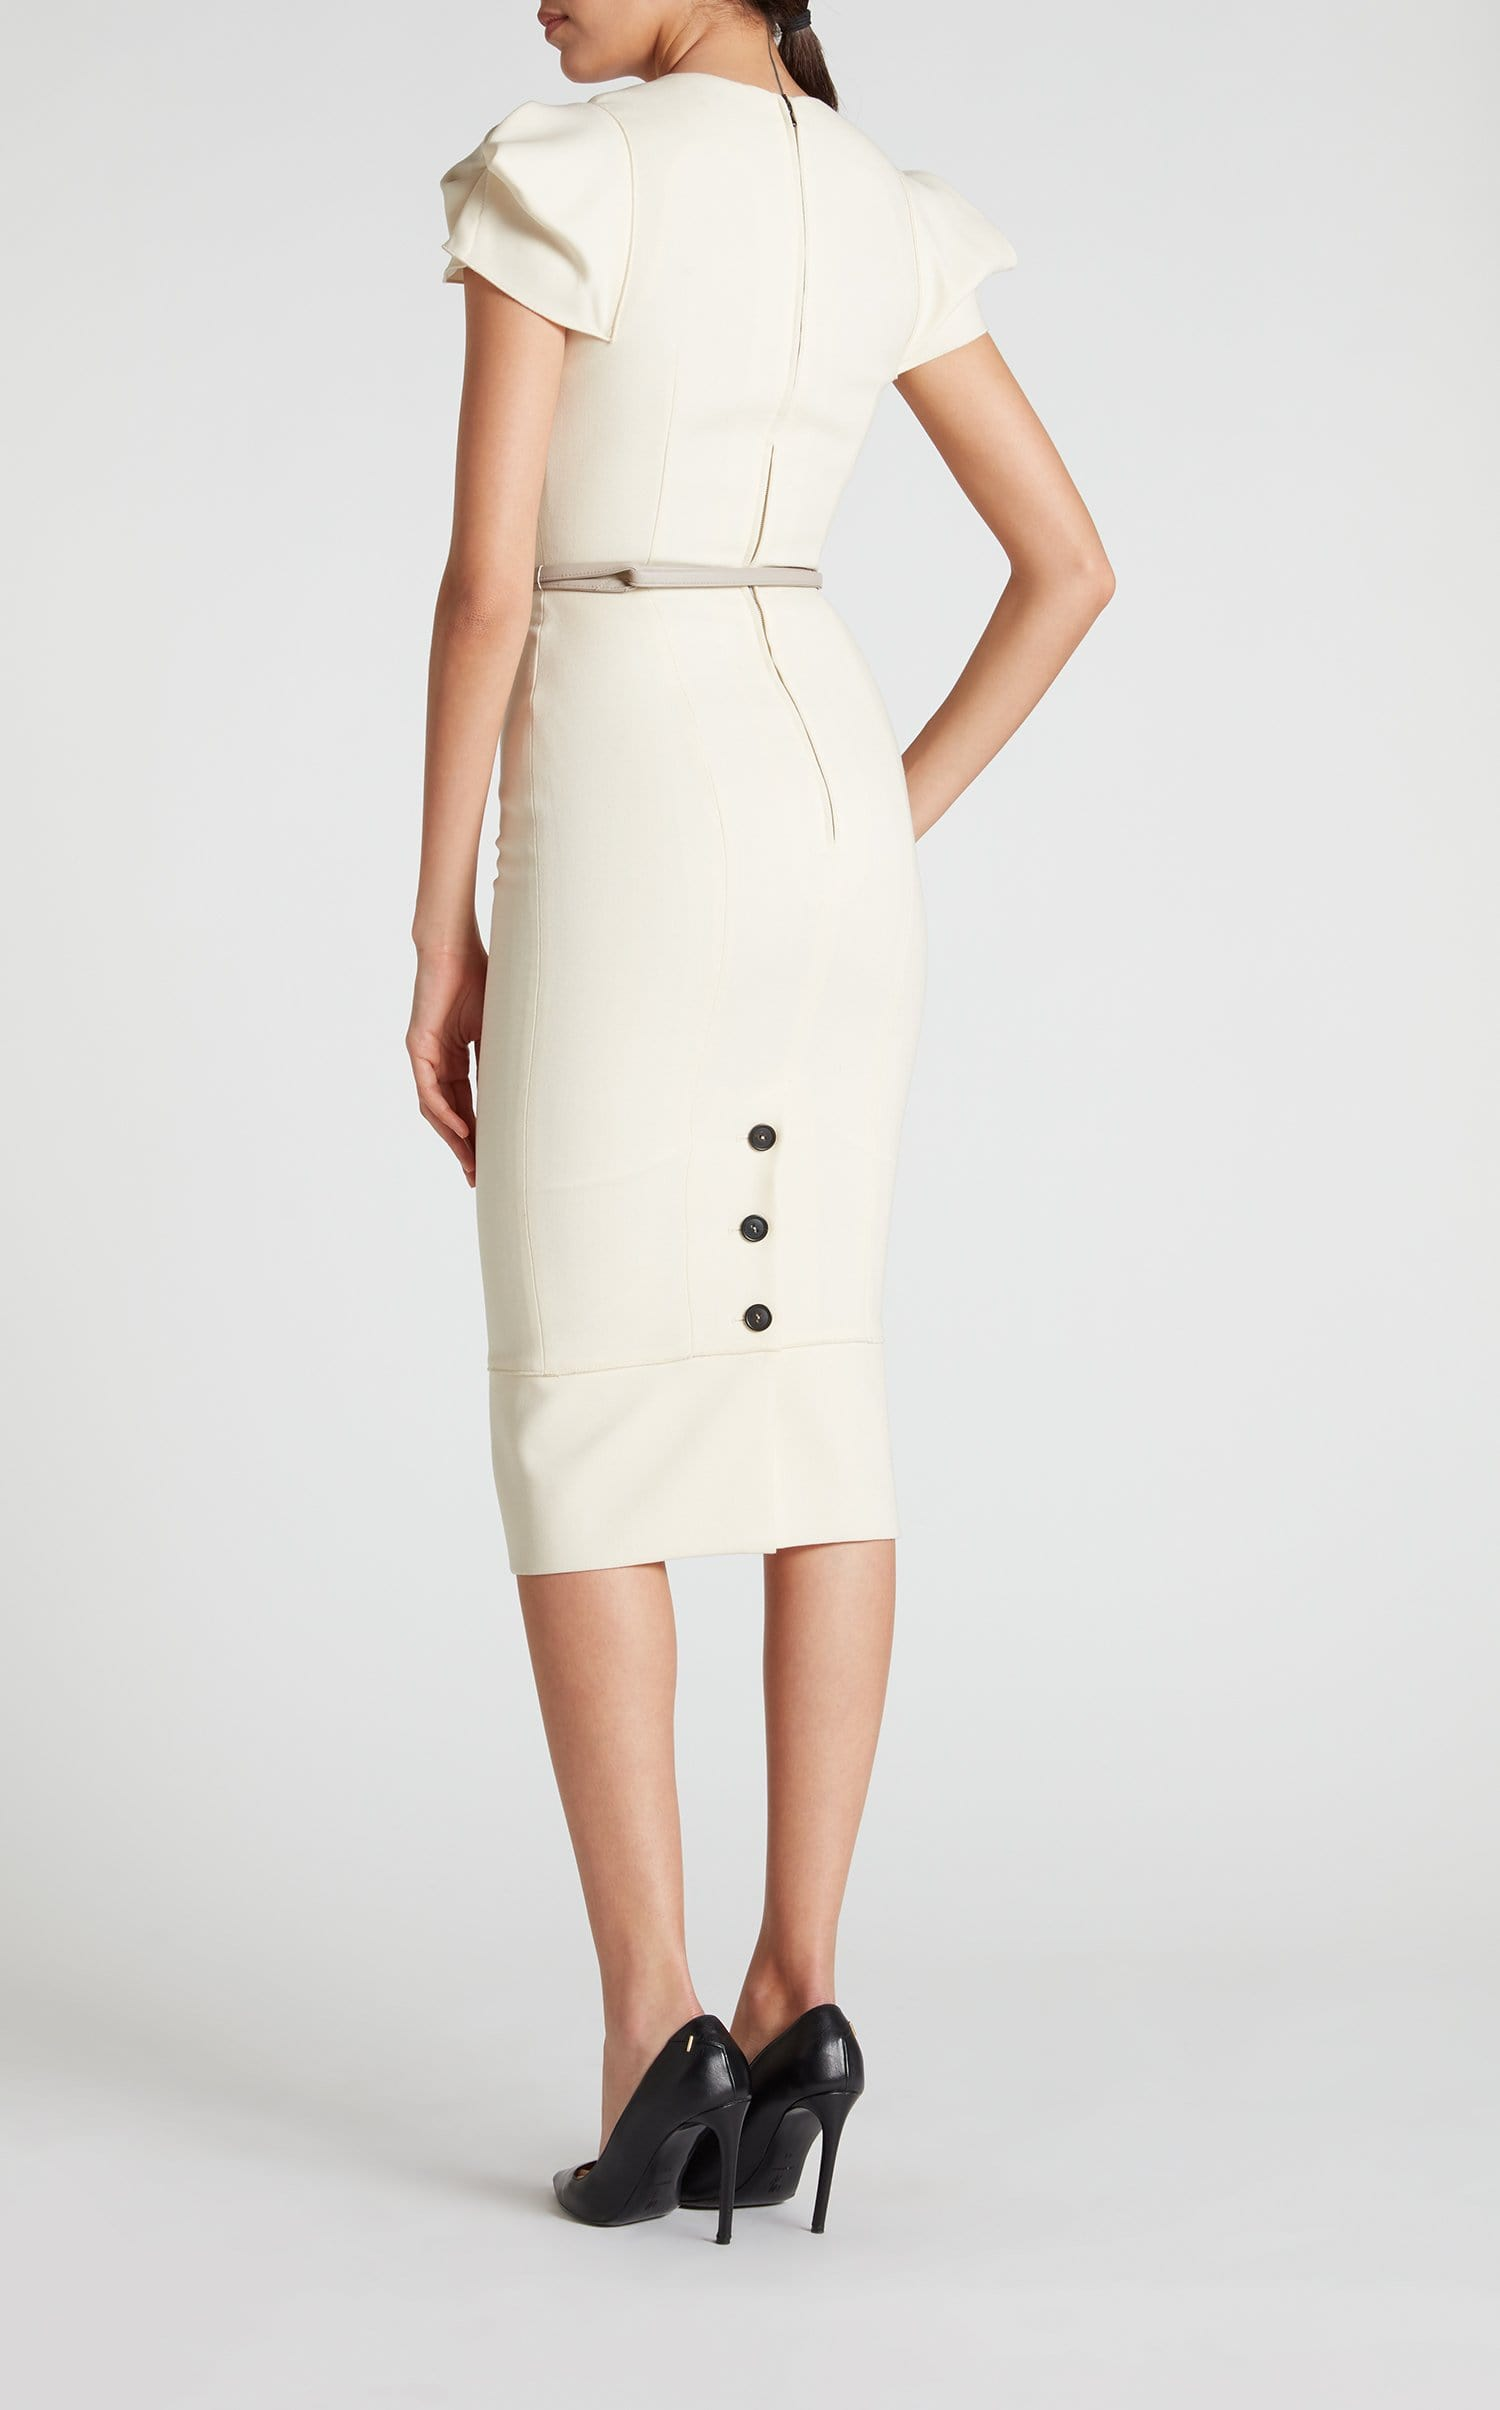 Galaxy Dress In White from Roland Mouret